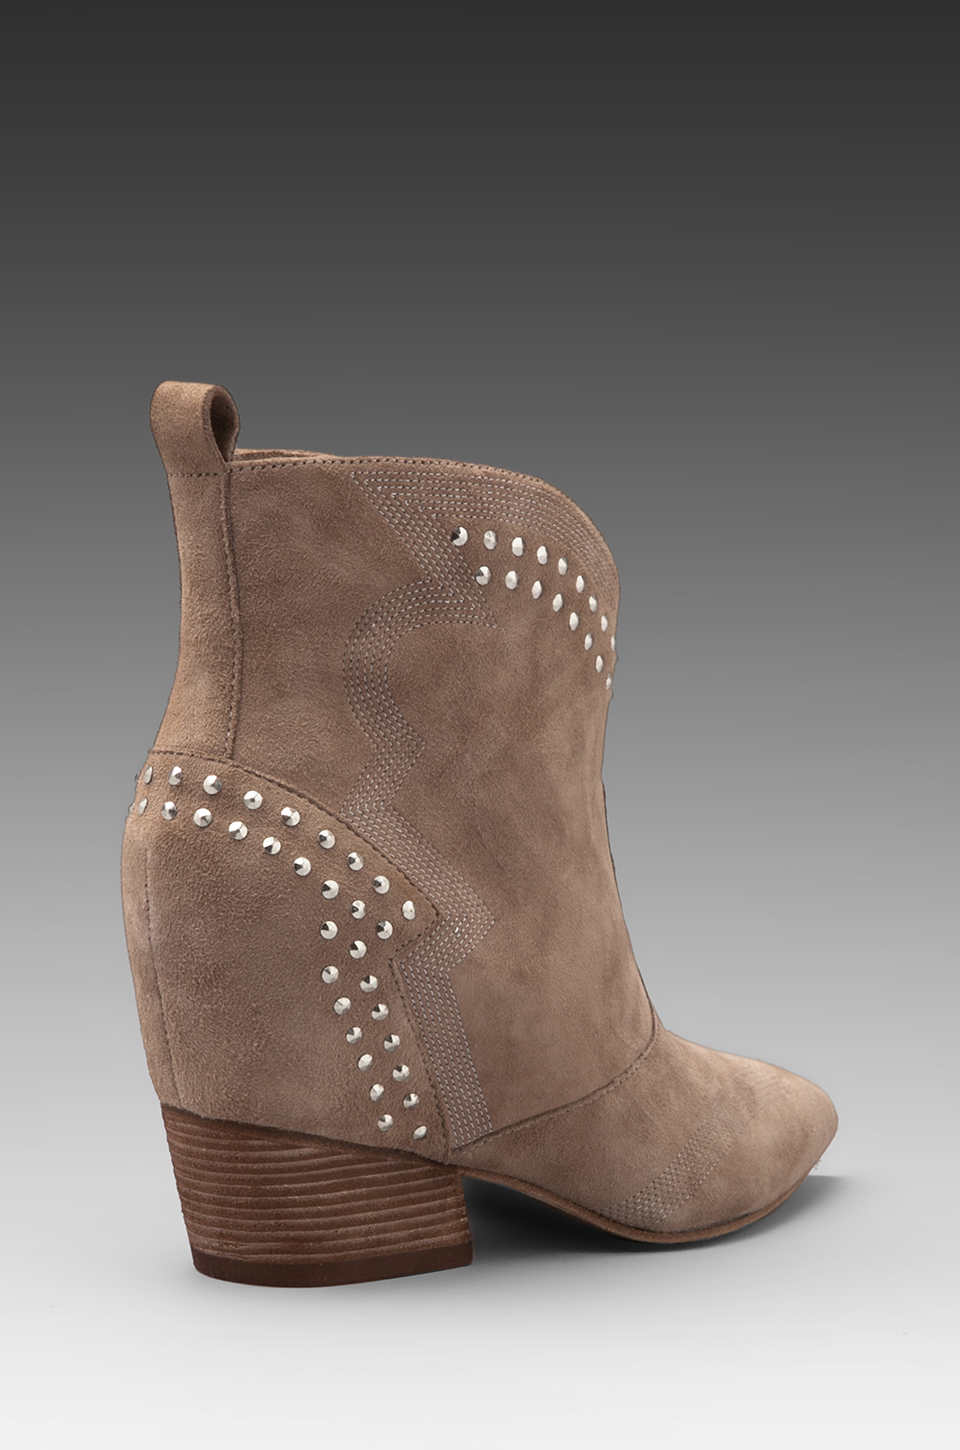 Sigerson Morrison Accent Hidden Wedge Bootie In Taupe In